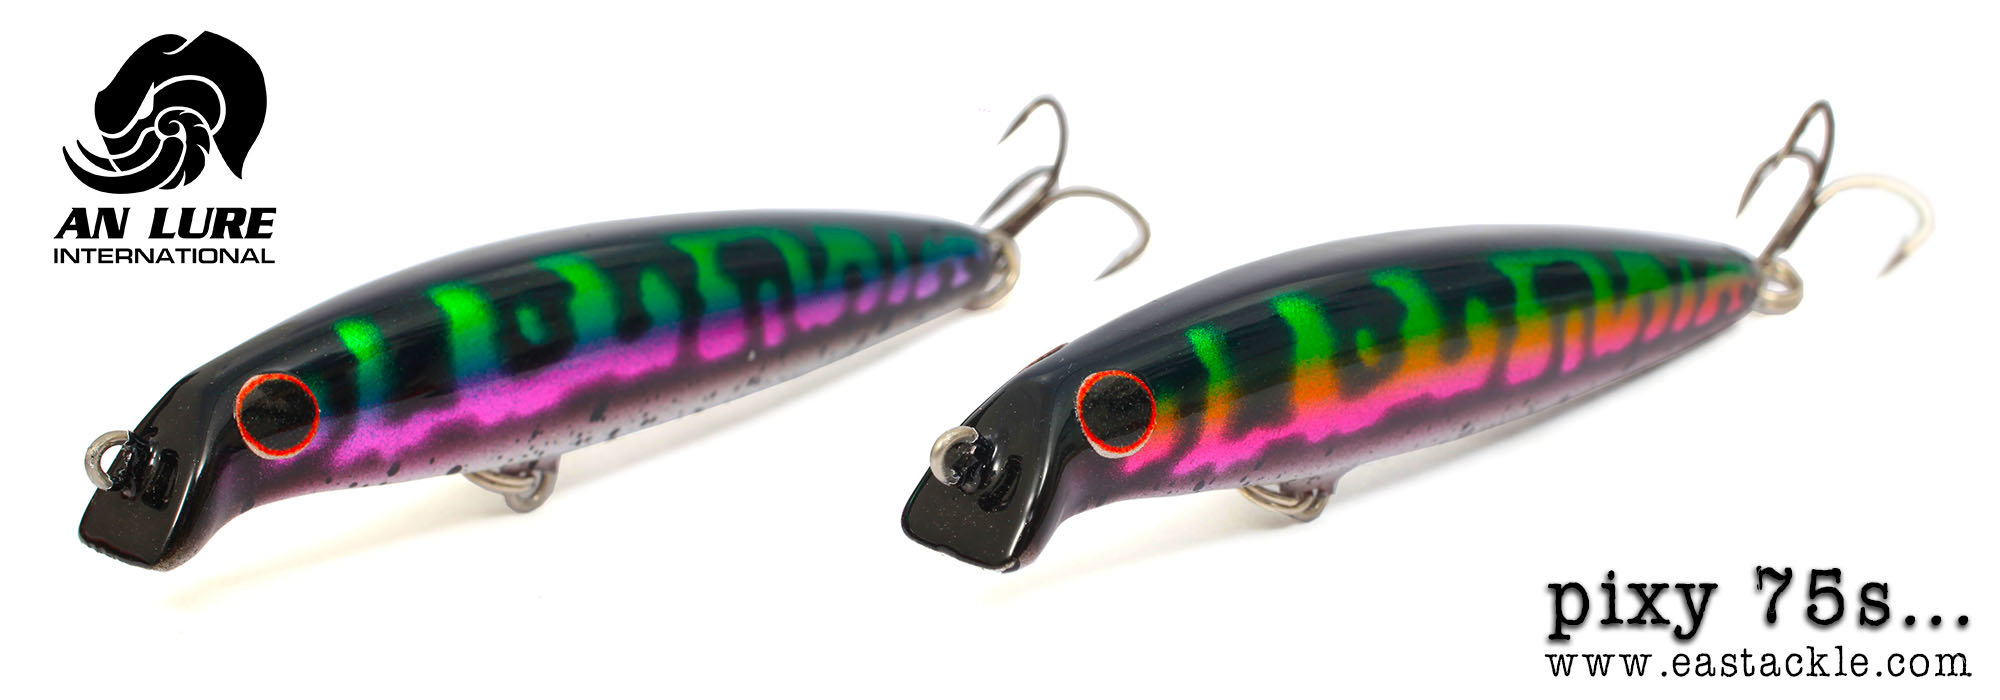 An Lure International - Pixy 75S - Snakehead - Minnow Lures